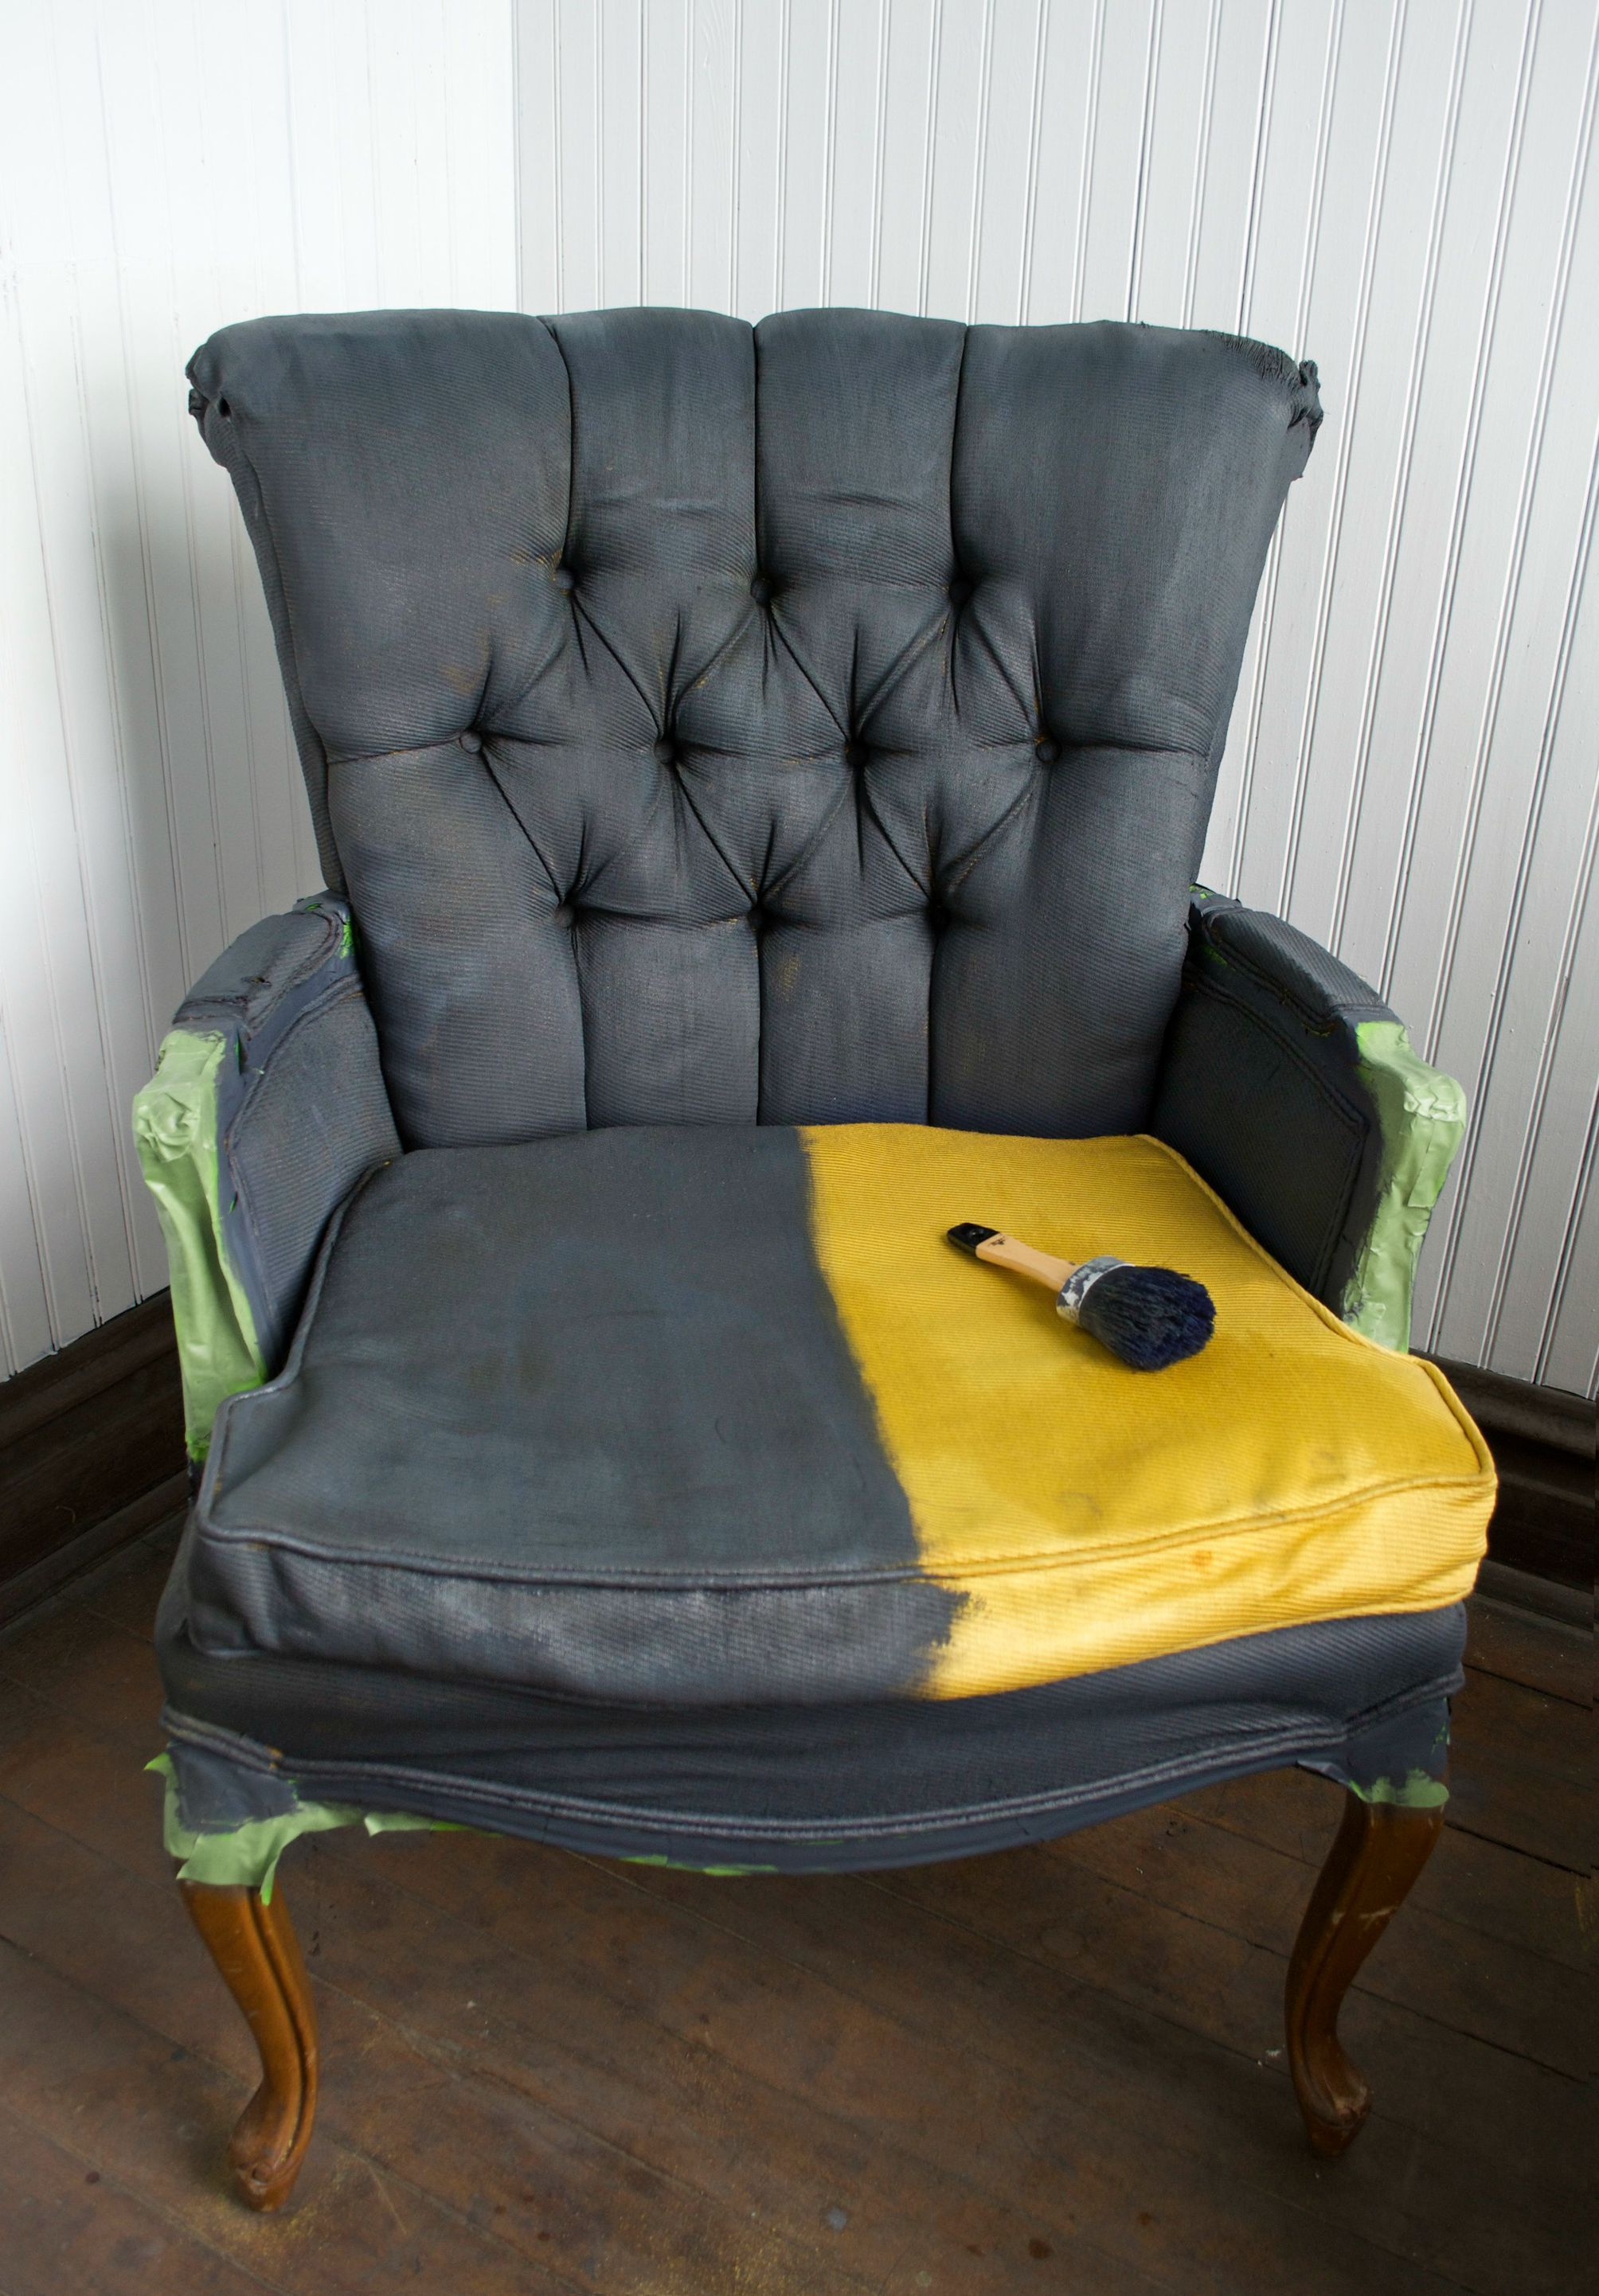 Diy Fabric Chair Makeover With Paint Fabric Chairs Makeover Painting Fabric Chairs Painting Fabric Furniture